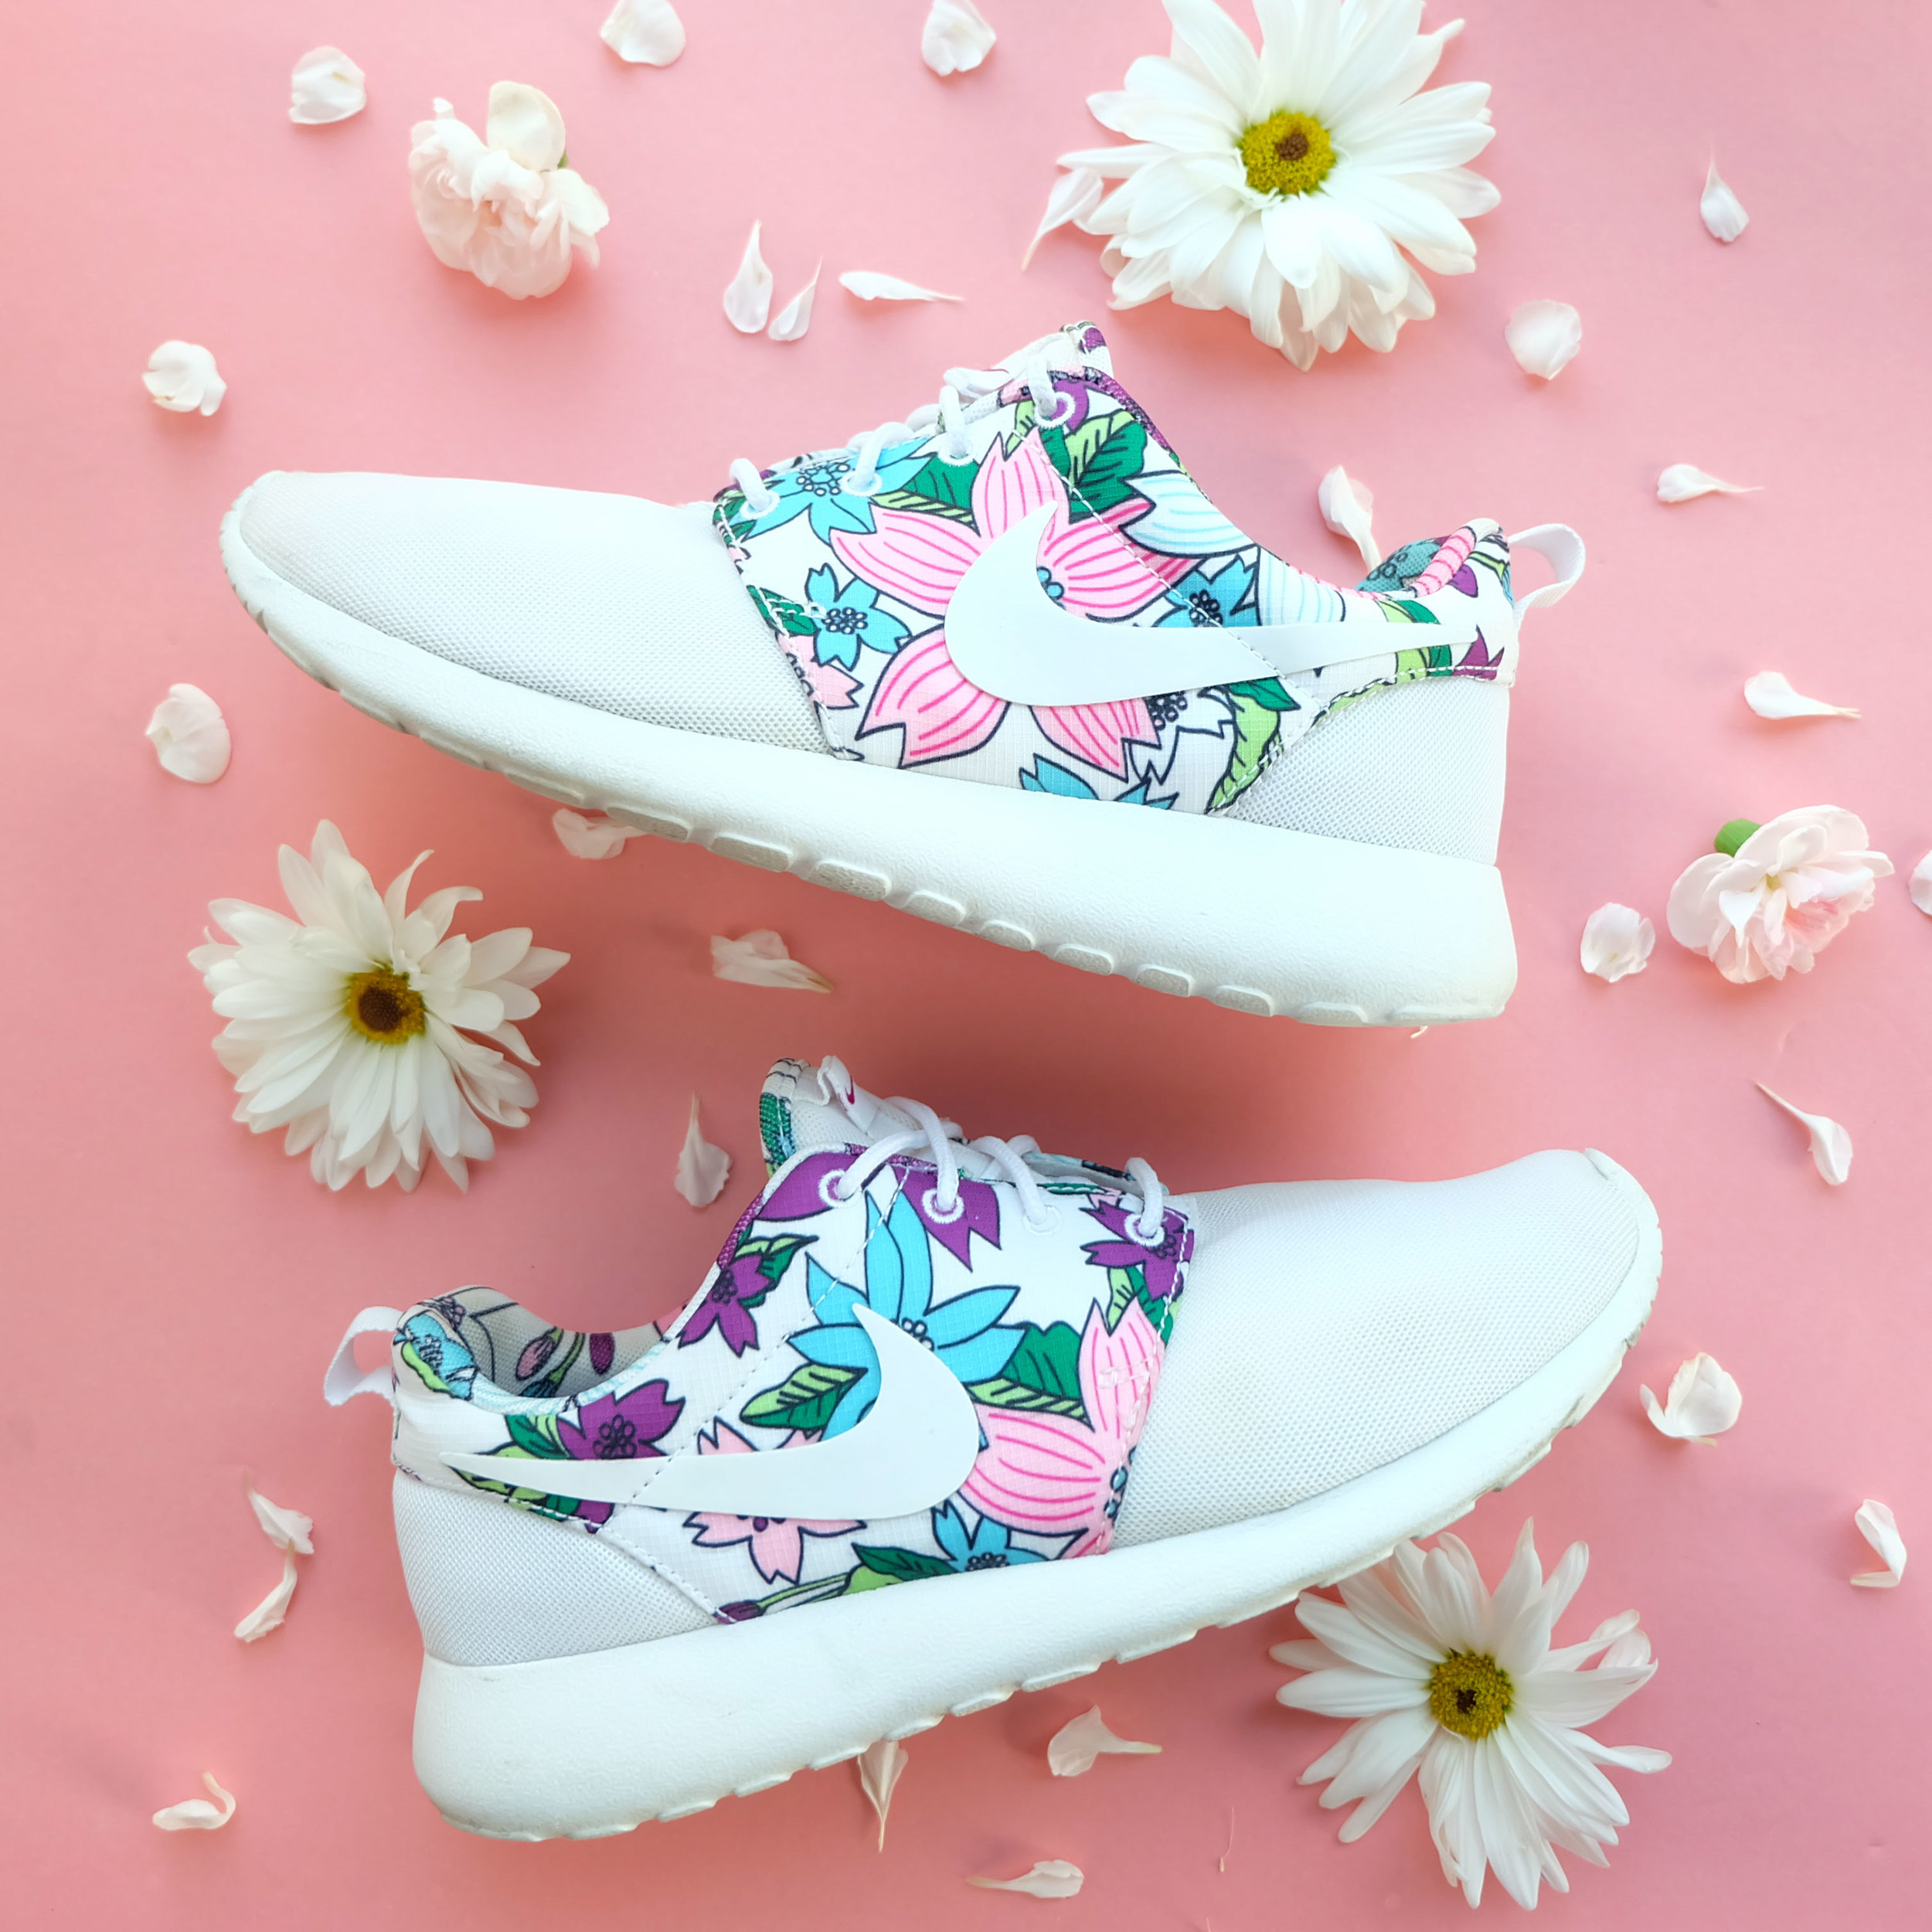 Nike Roshe Run Sneakers with Floral Print, Cute Running Shoes for Summer 2016